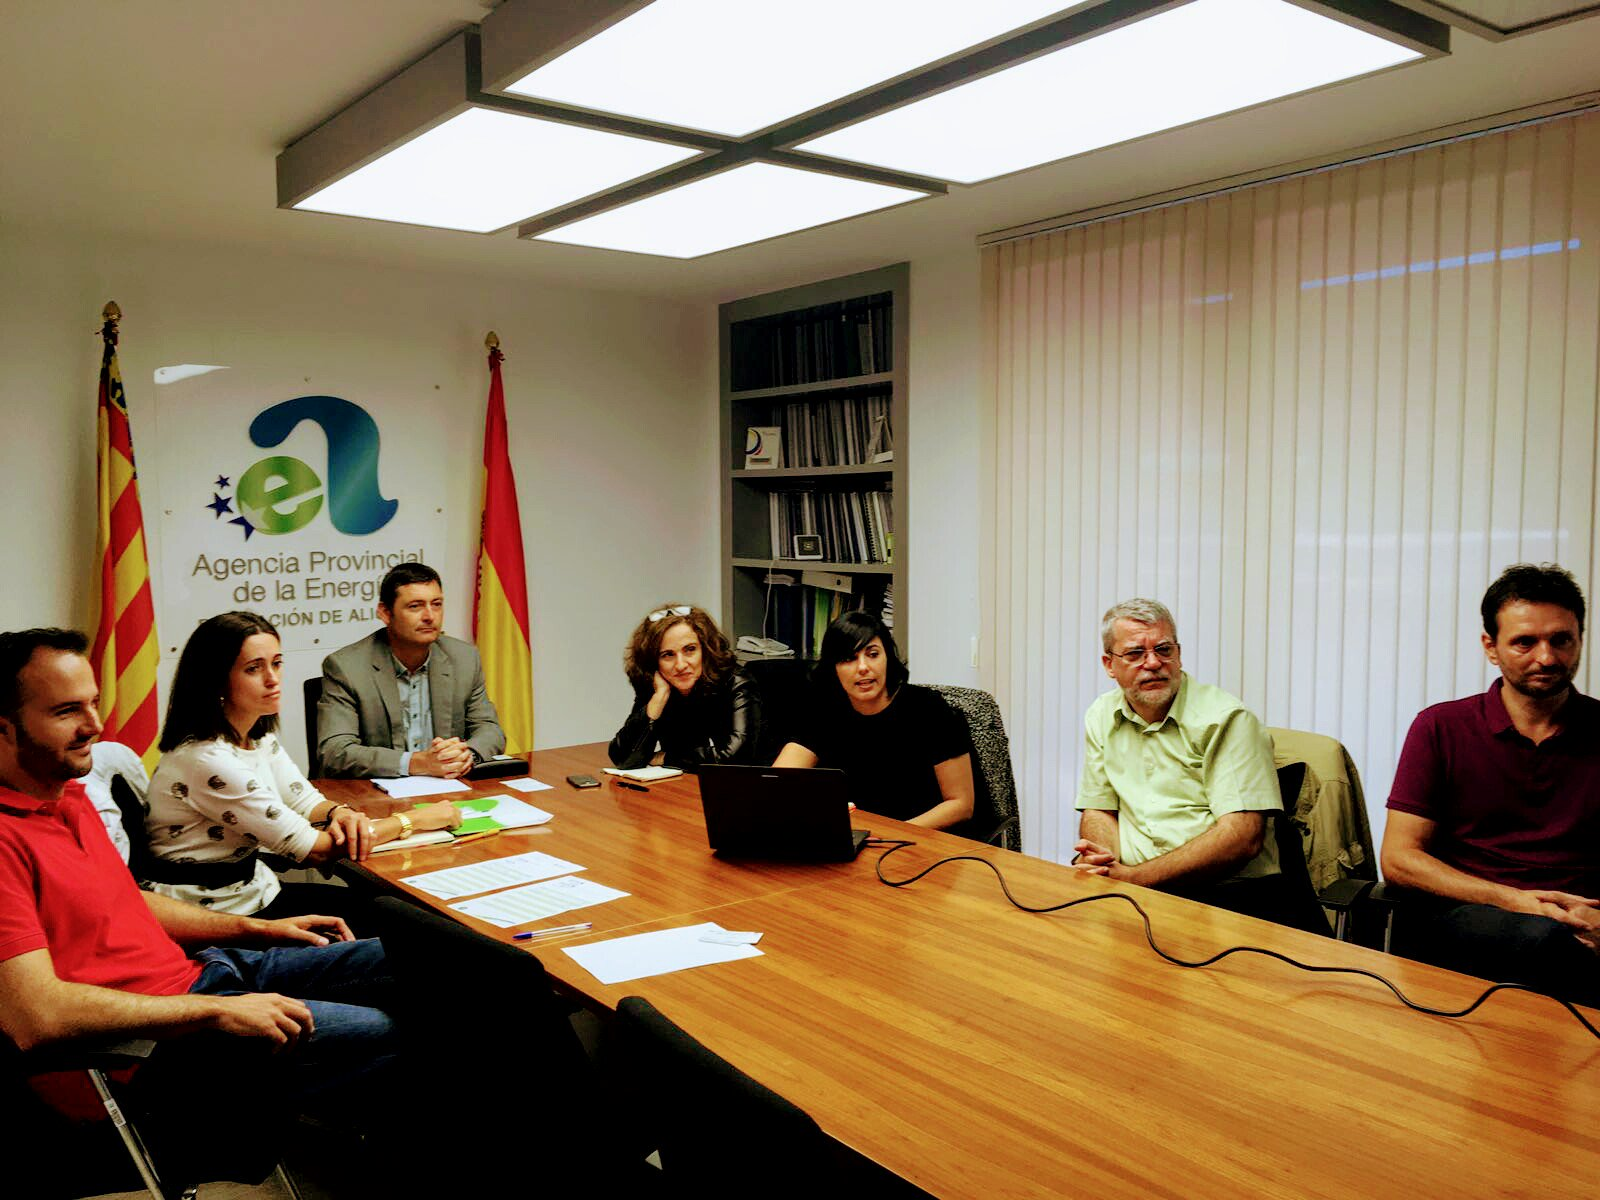 Target Group Meeting: Energy Agency of Alicante & Elche Municipality